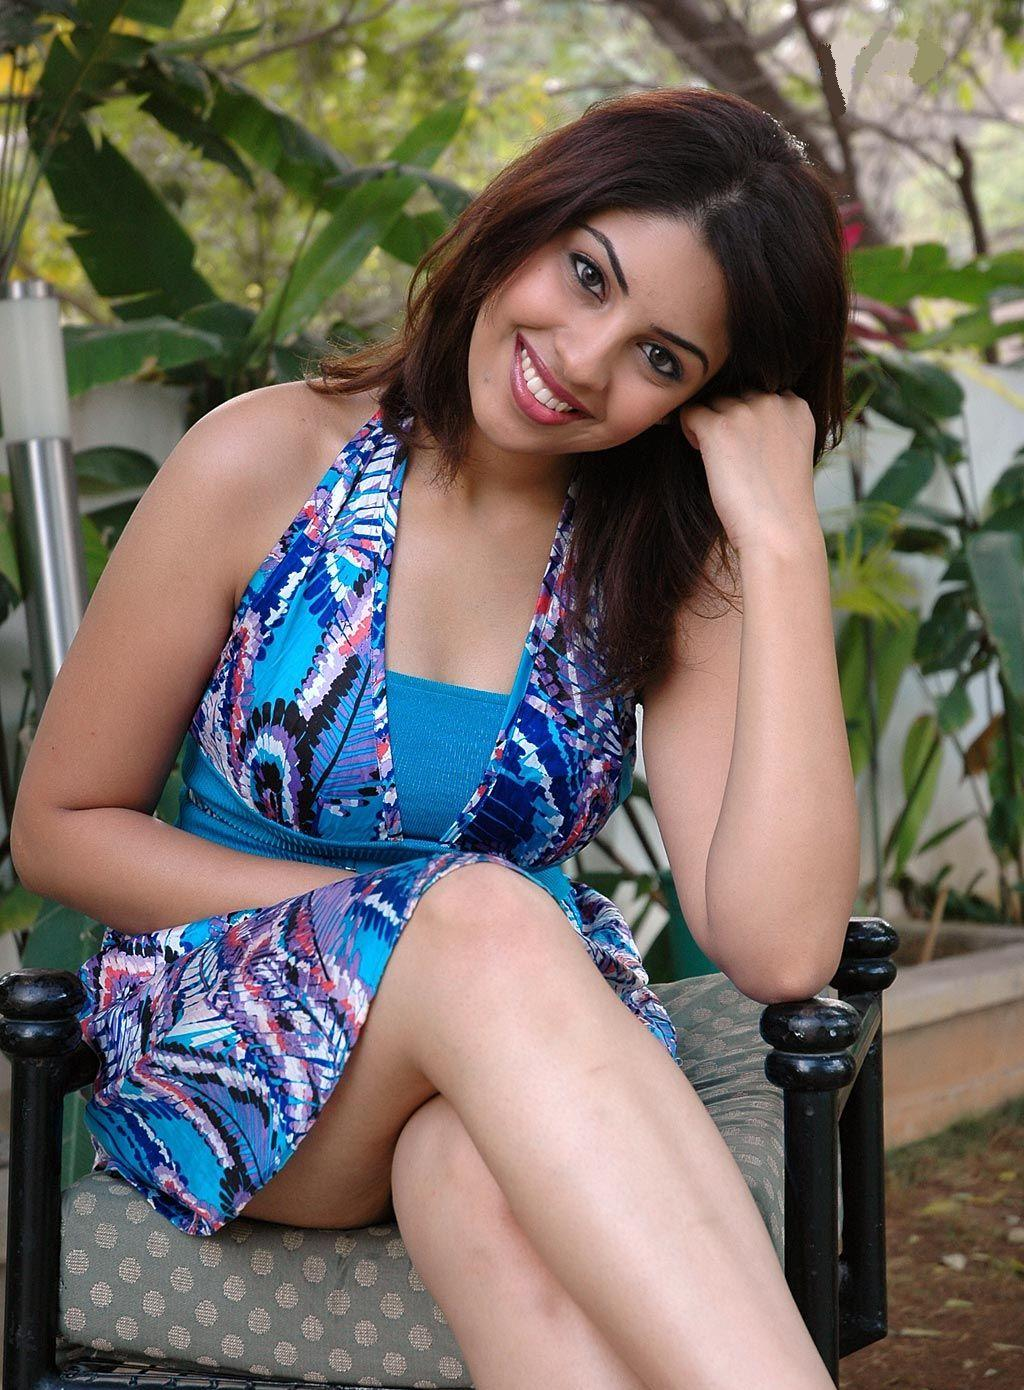 High Quality Bollywood Celebrity Pictures: Richa ...